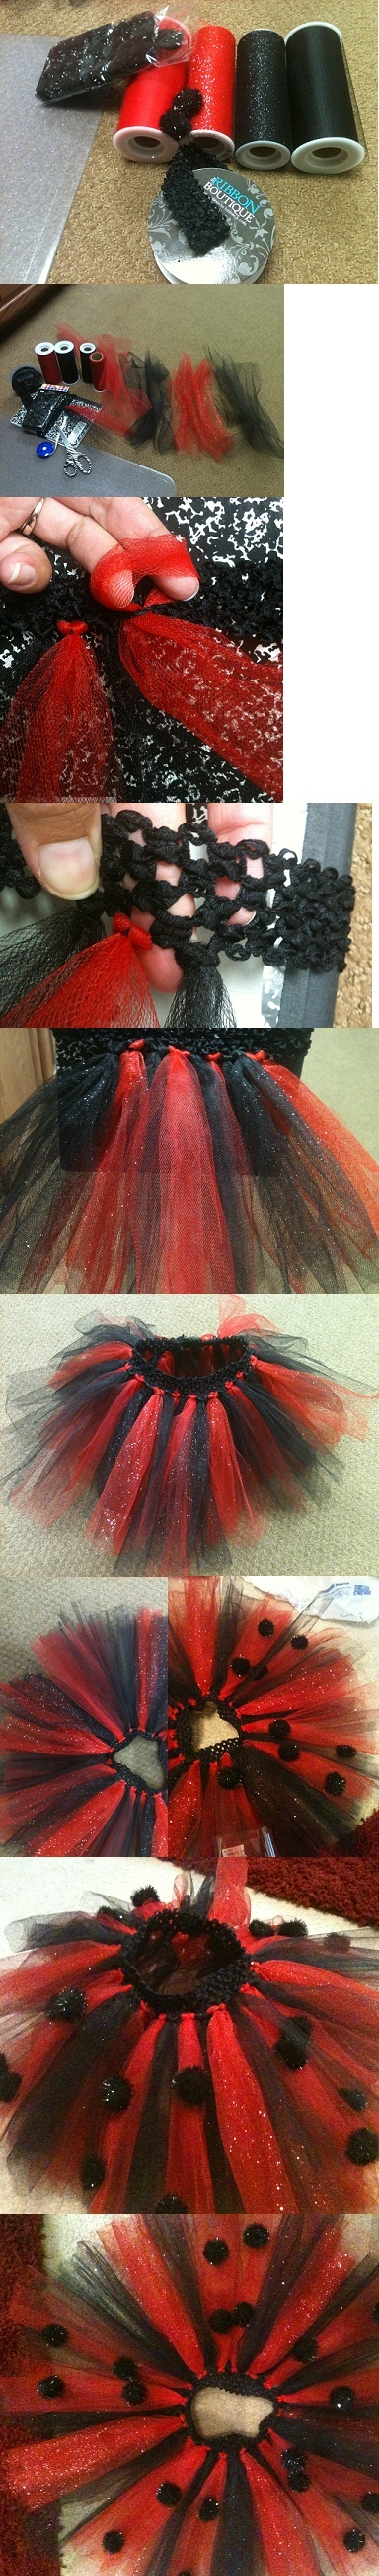 Lady Bug Tutu   http://theherberfamily.blogspot.com/2010/10/easy-tutu-tutorial.html